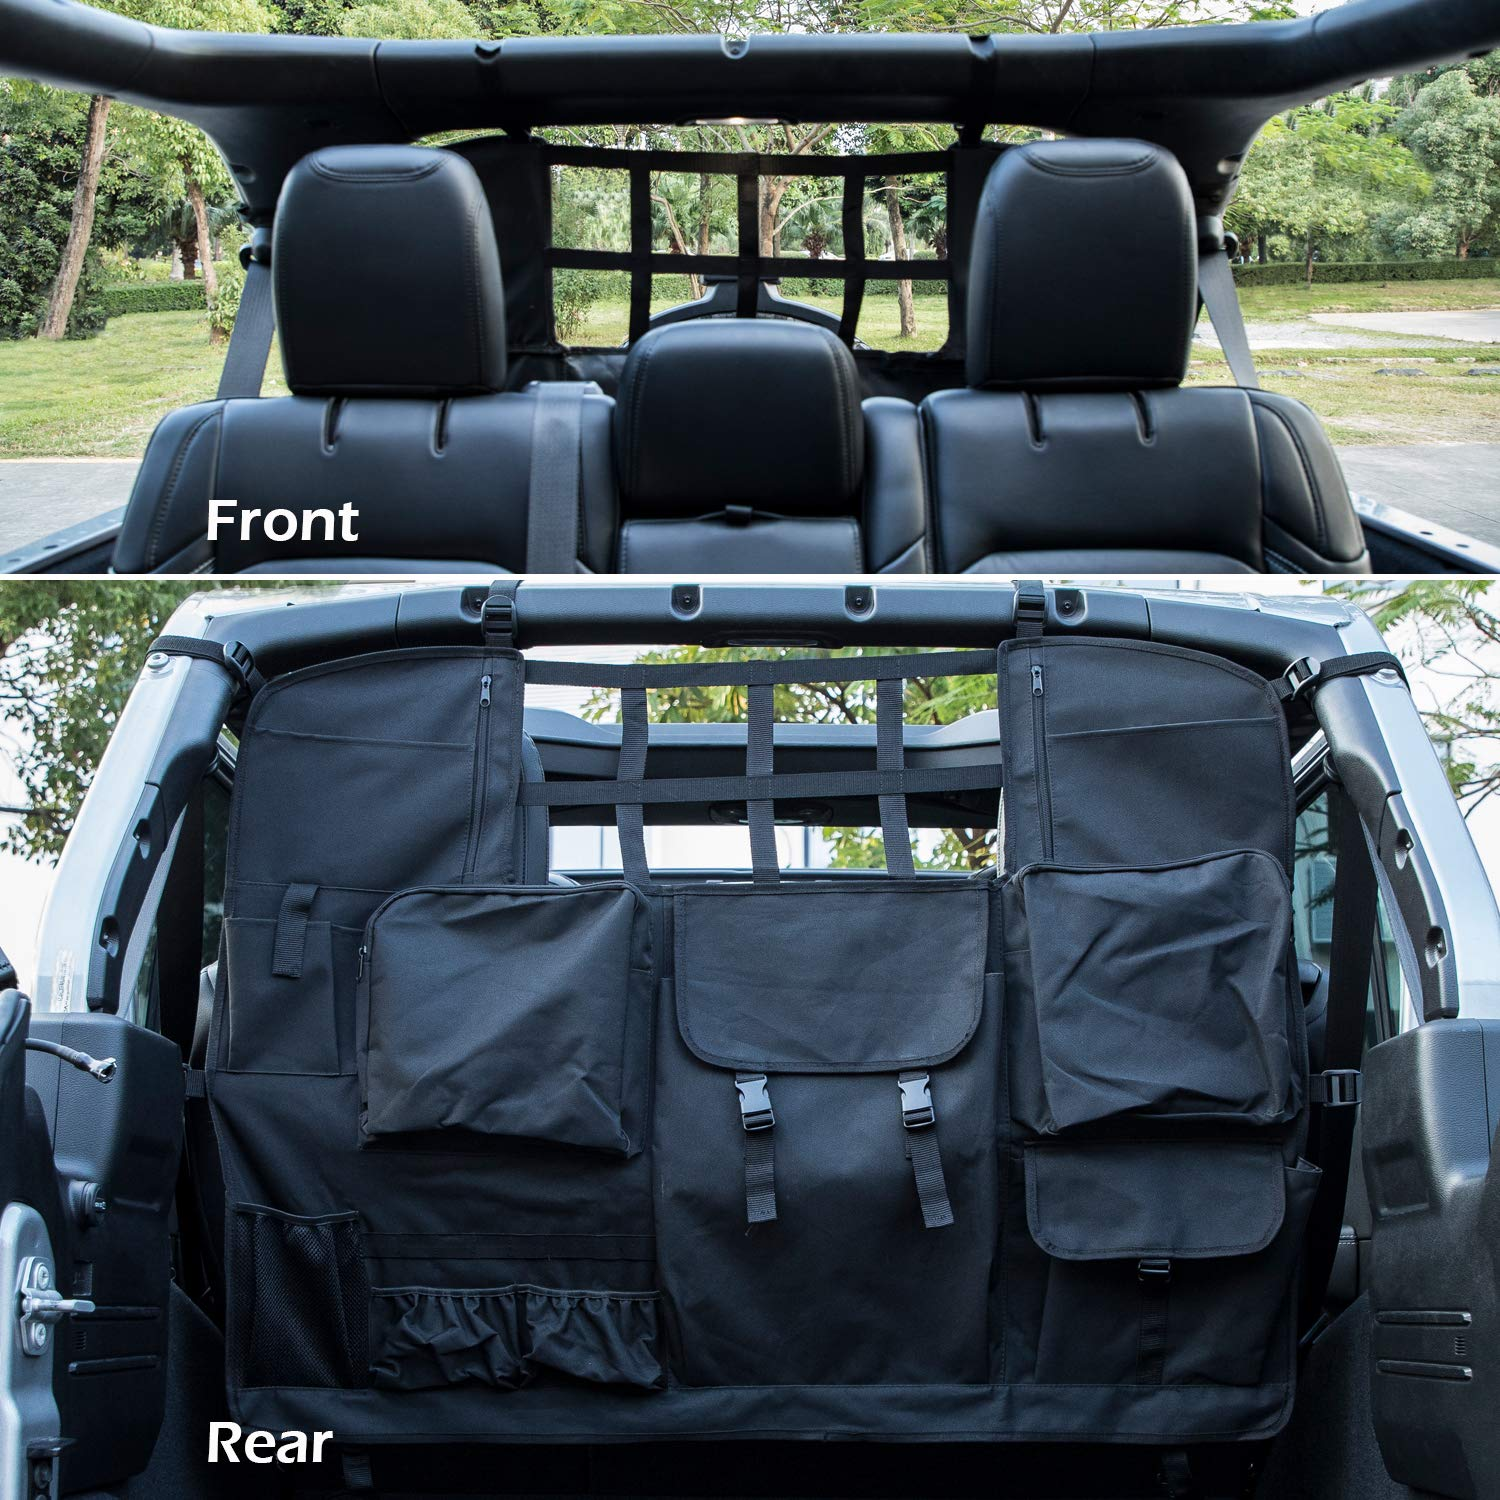 Pet Dog Barrier Yoursme Car Rear Seat Cover for Jeep Wrangler 2007-2019 JK/&JL 4 Door with Multi-Size Organizer Storage Bags//Trunk Cargo Tool Organizers Holder